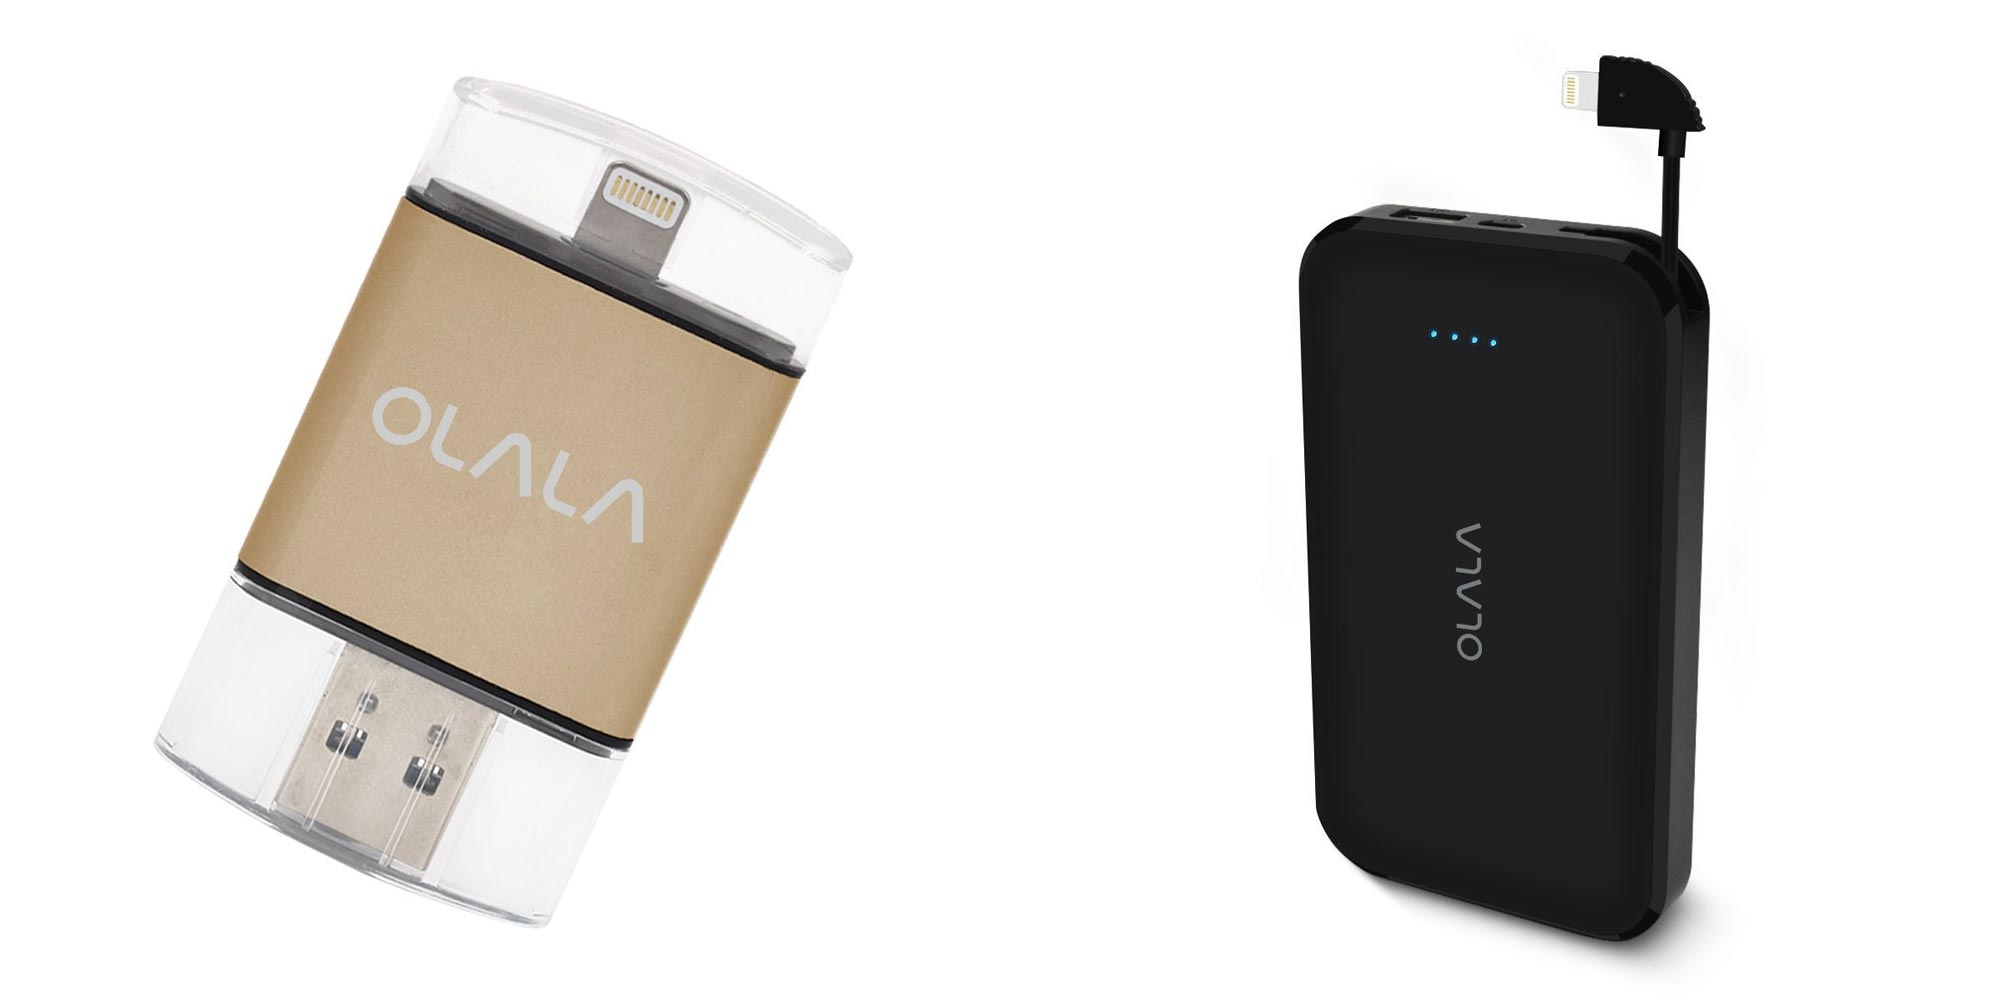 OLALA MFi-certified portable battery and flash drive accessories from $22